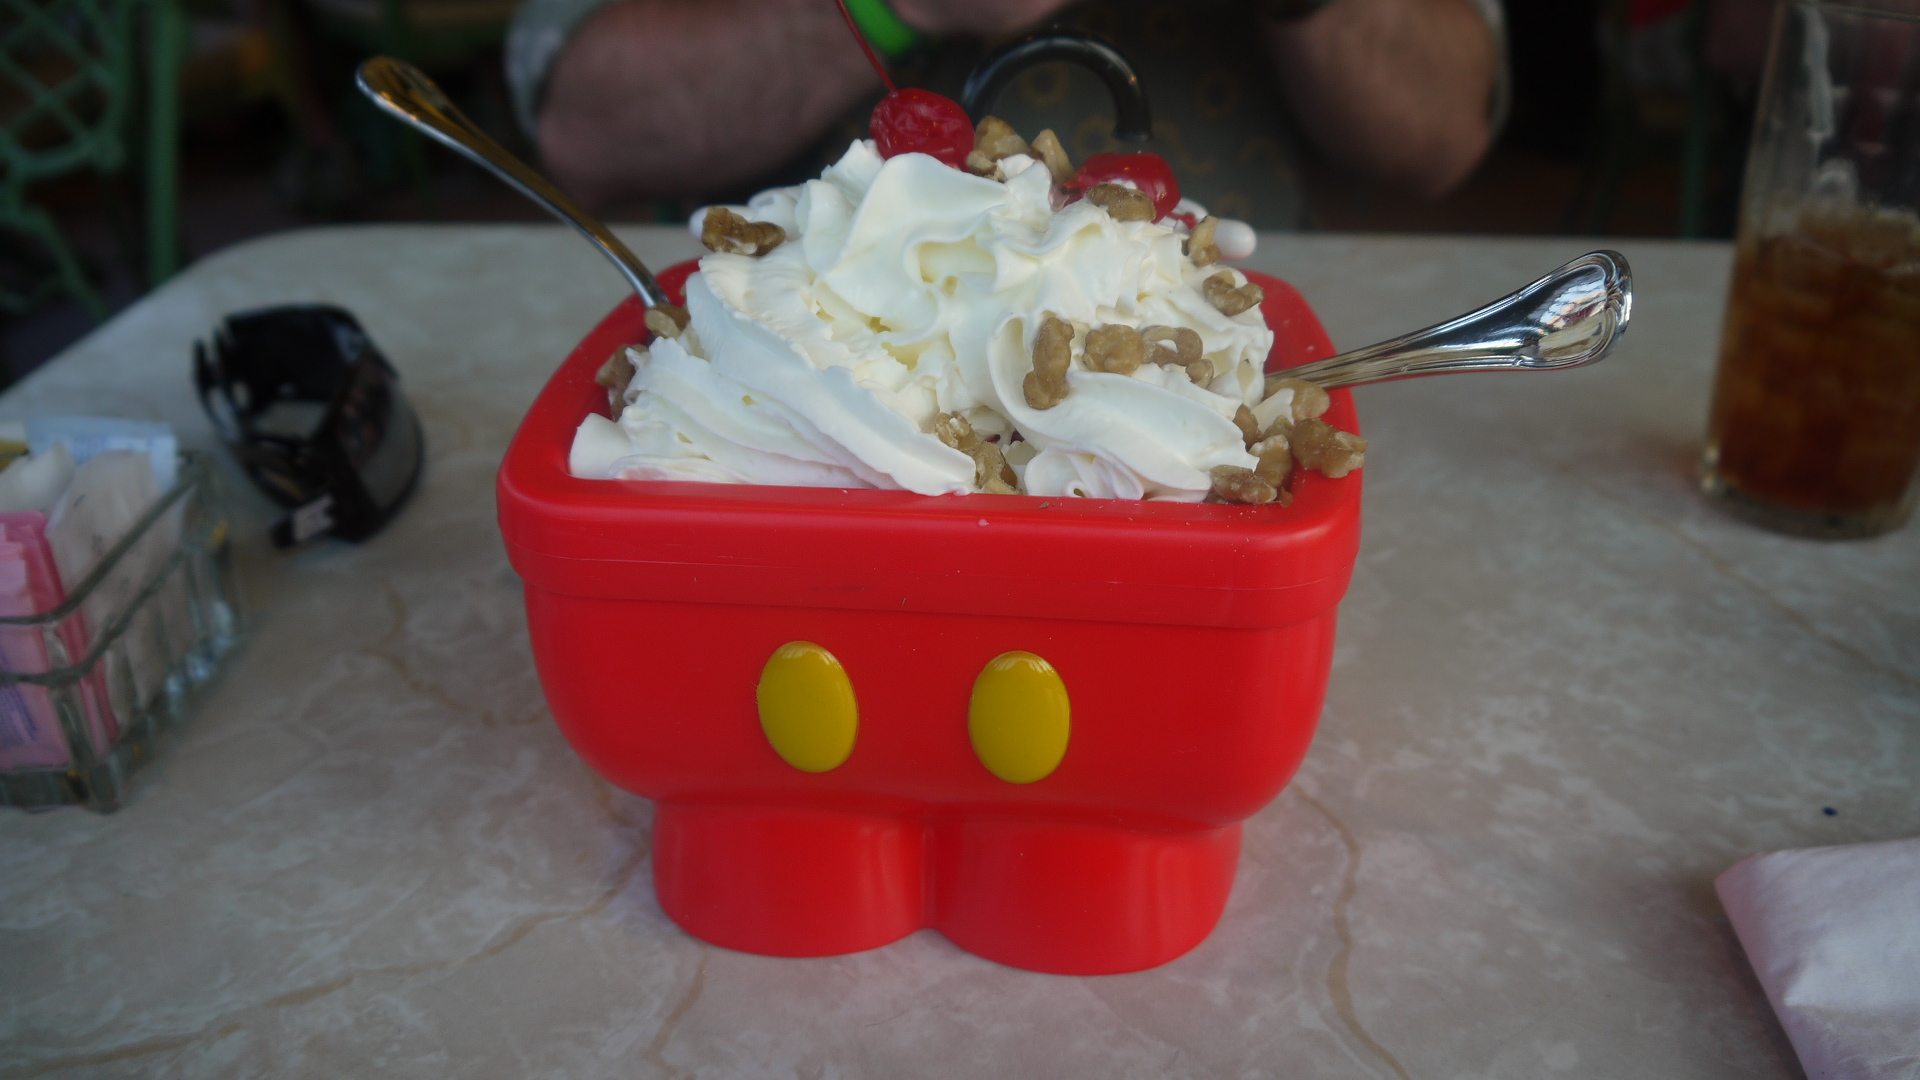 Disney dining ins outs of the mickeys kitchen sink at disney world to try the mickey kitchen sink in the magic kingdom at the plaza restaurant after a delicious dinner i accepted this disney dining ice cream challenge workwithnaturefo